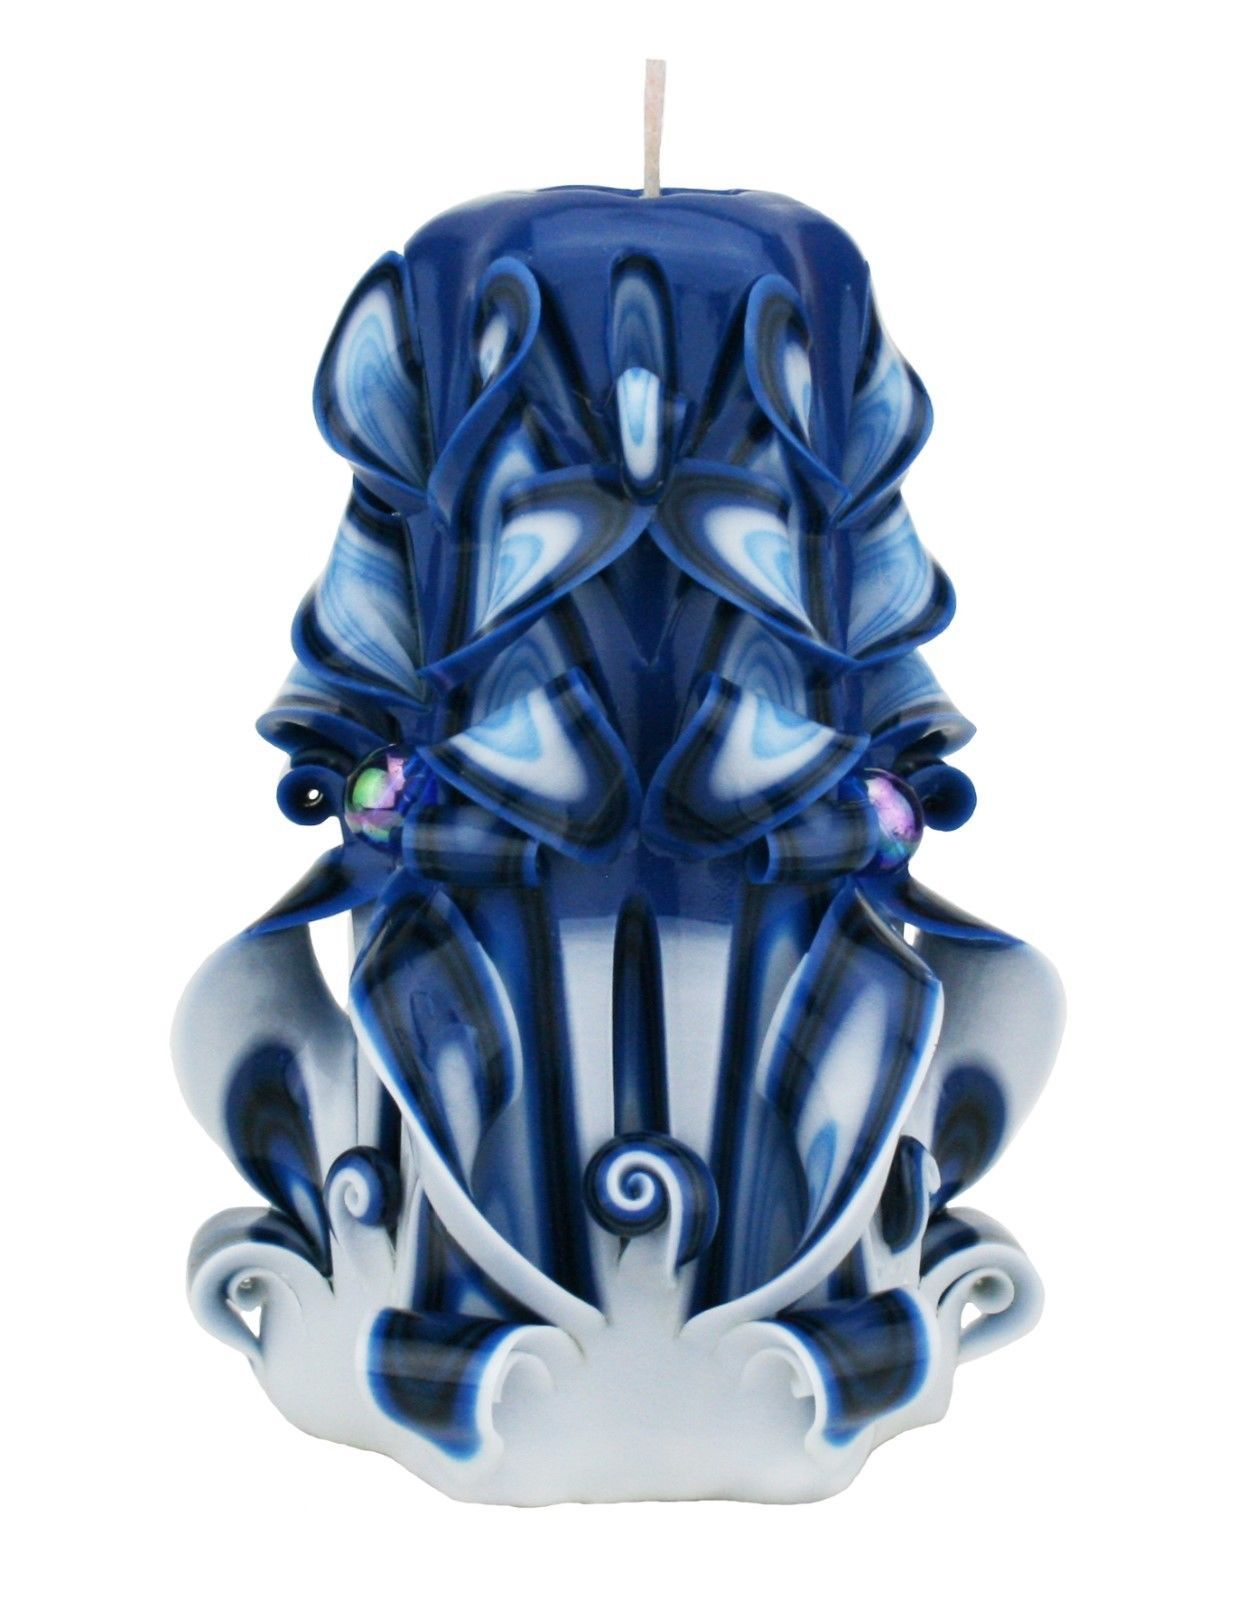 Carved Candles Blue Black White Paraffin Wax Unscented Free shipping